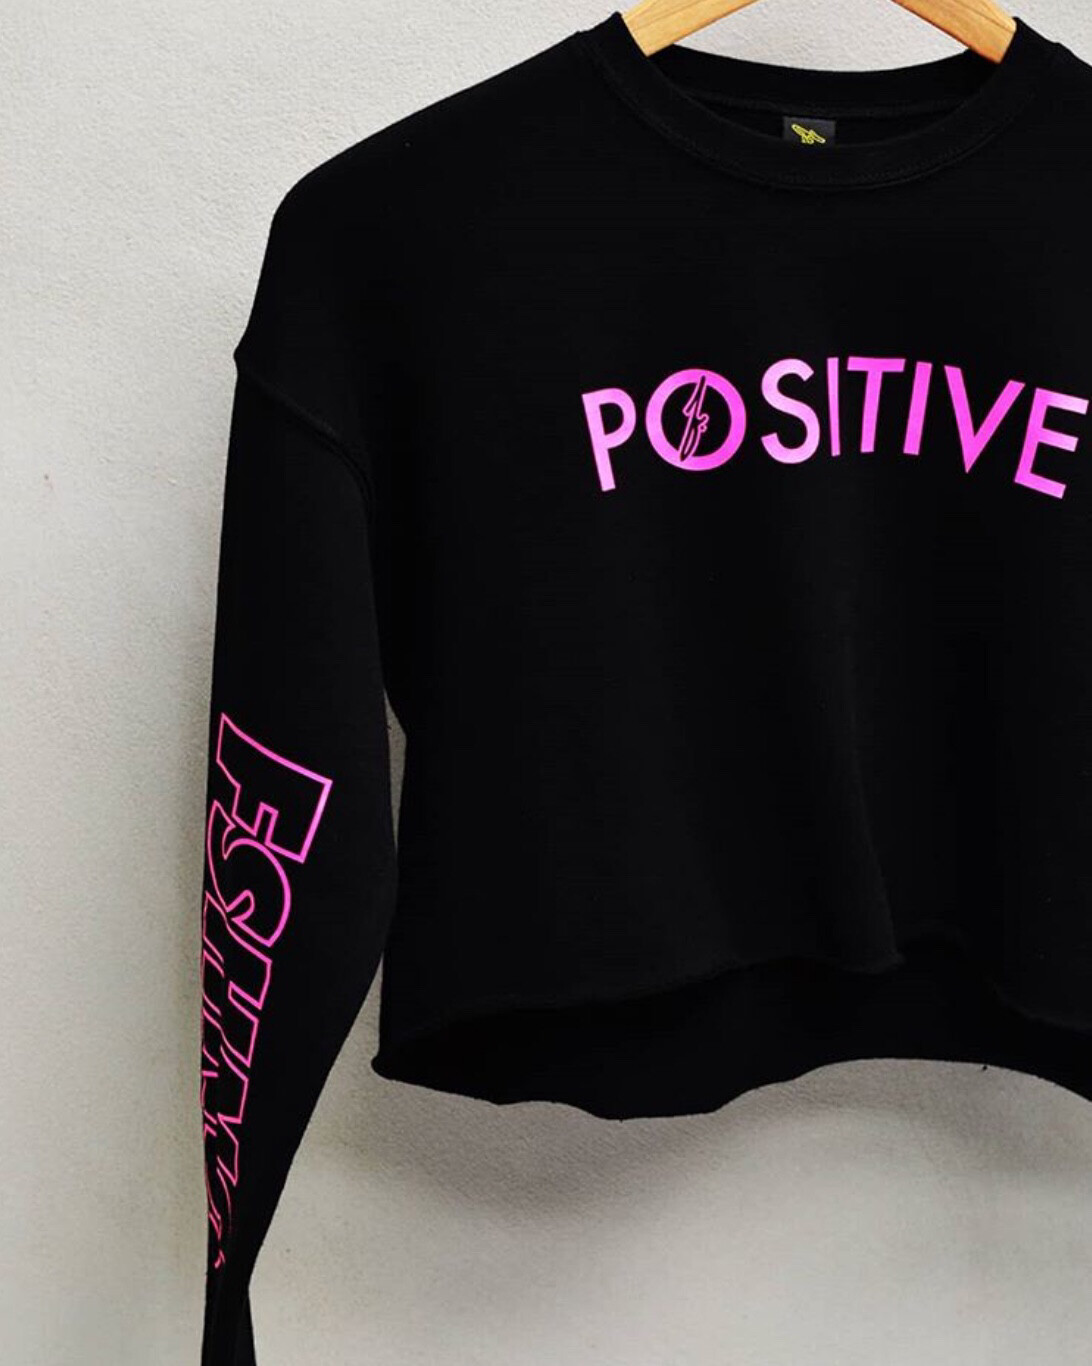 FSHNS Positive Long Sleeve Top (Black)